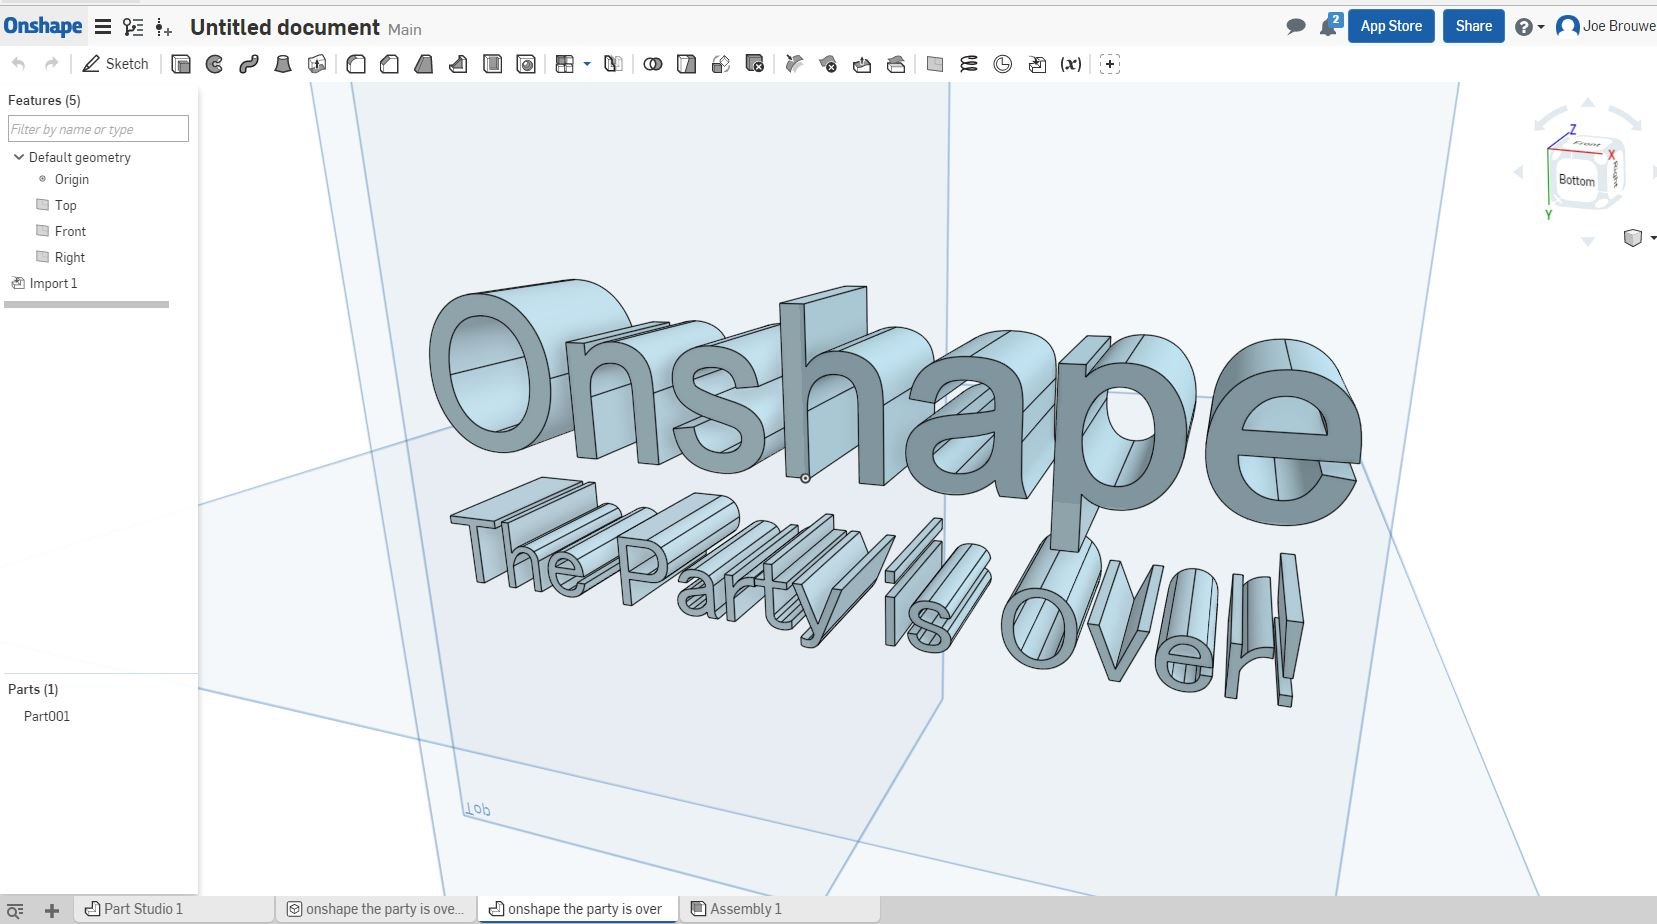 Onshape - The Party is Over!